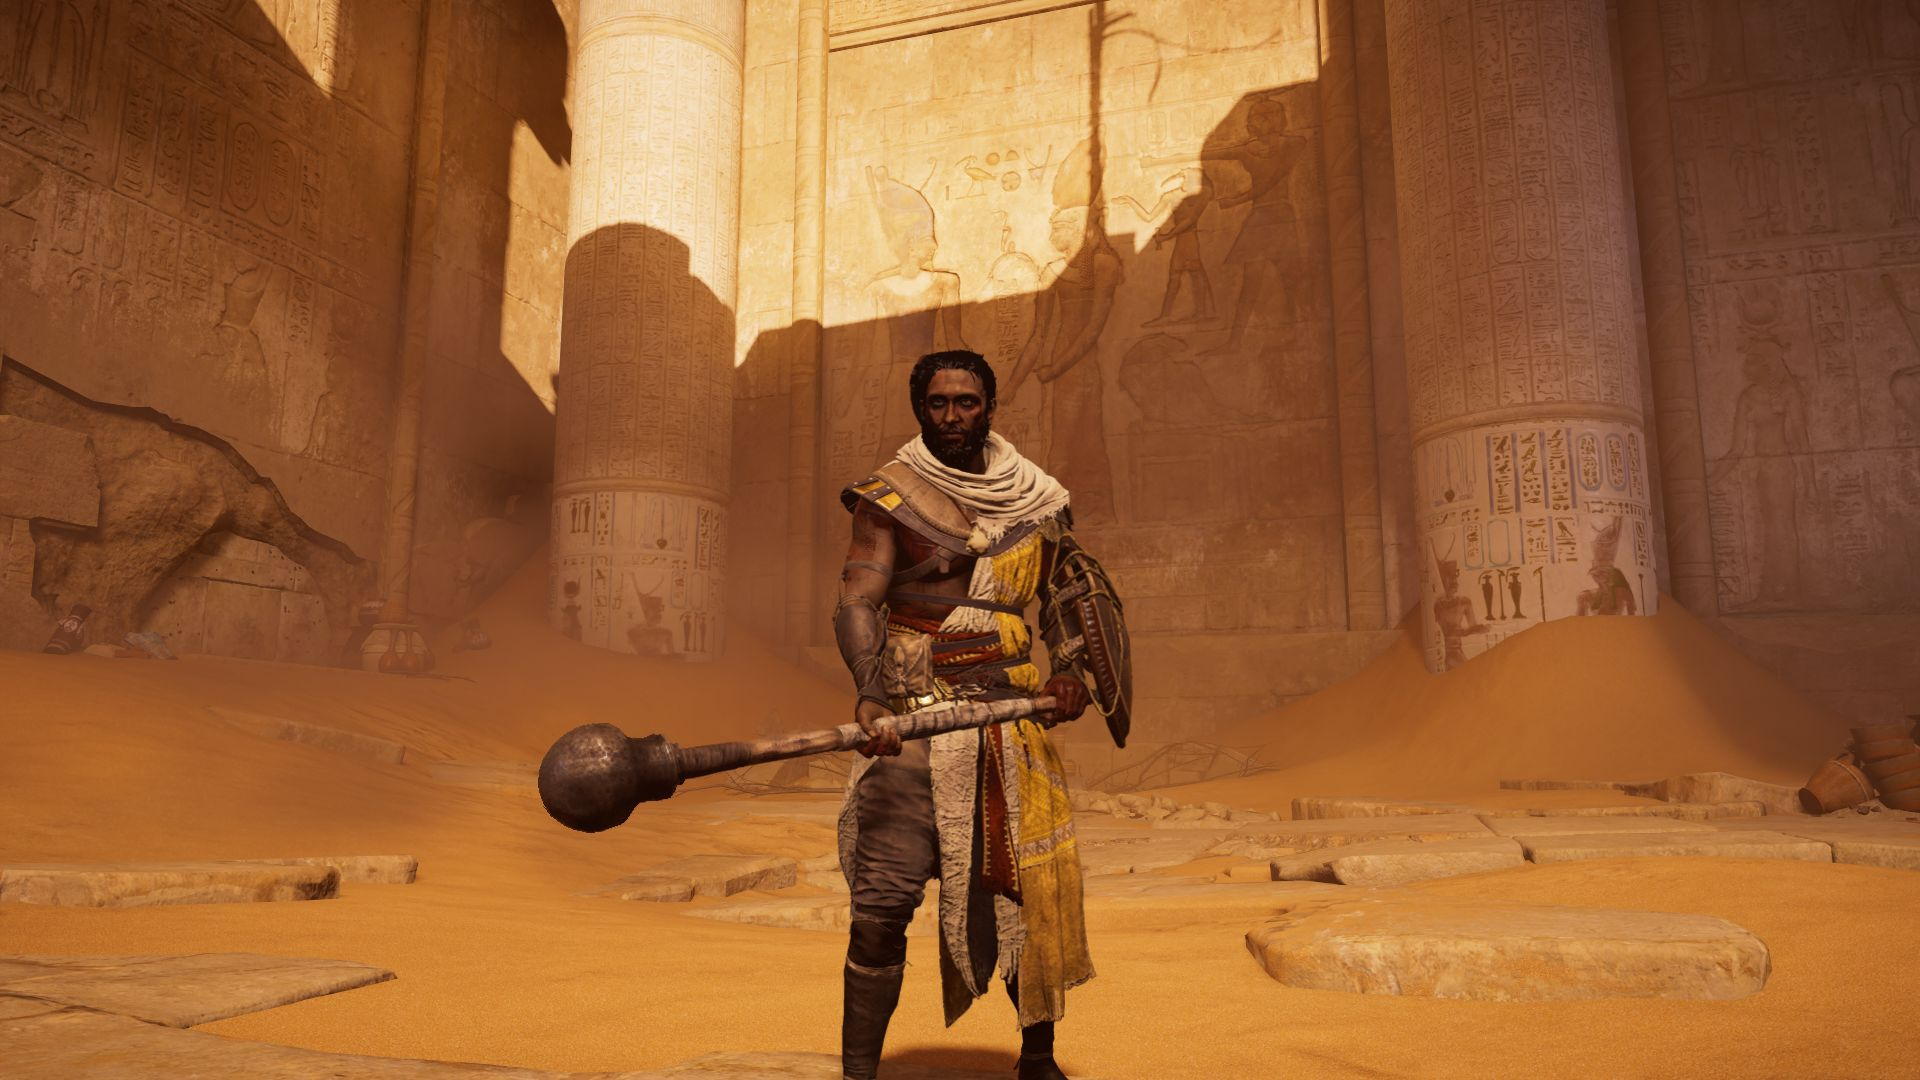 Assassin's Creed Origins Notebook and Desktop Benchmarks